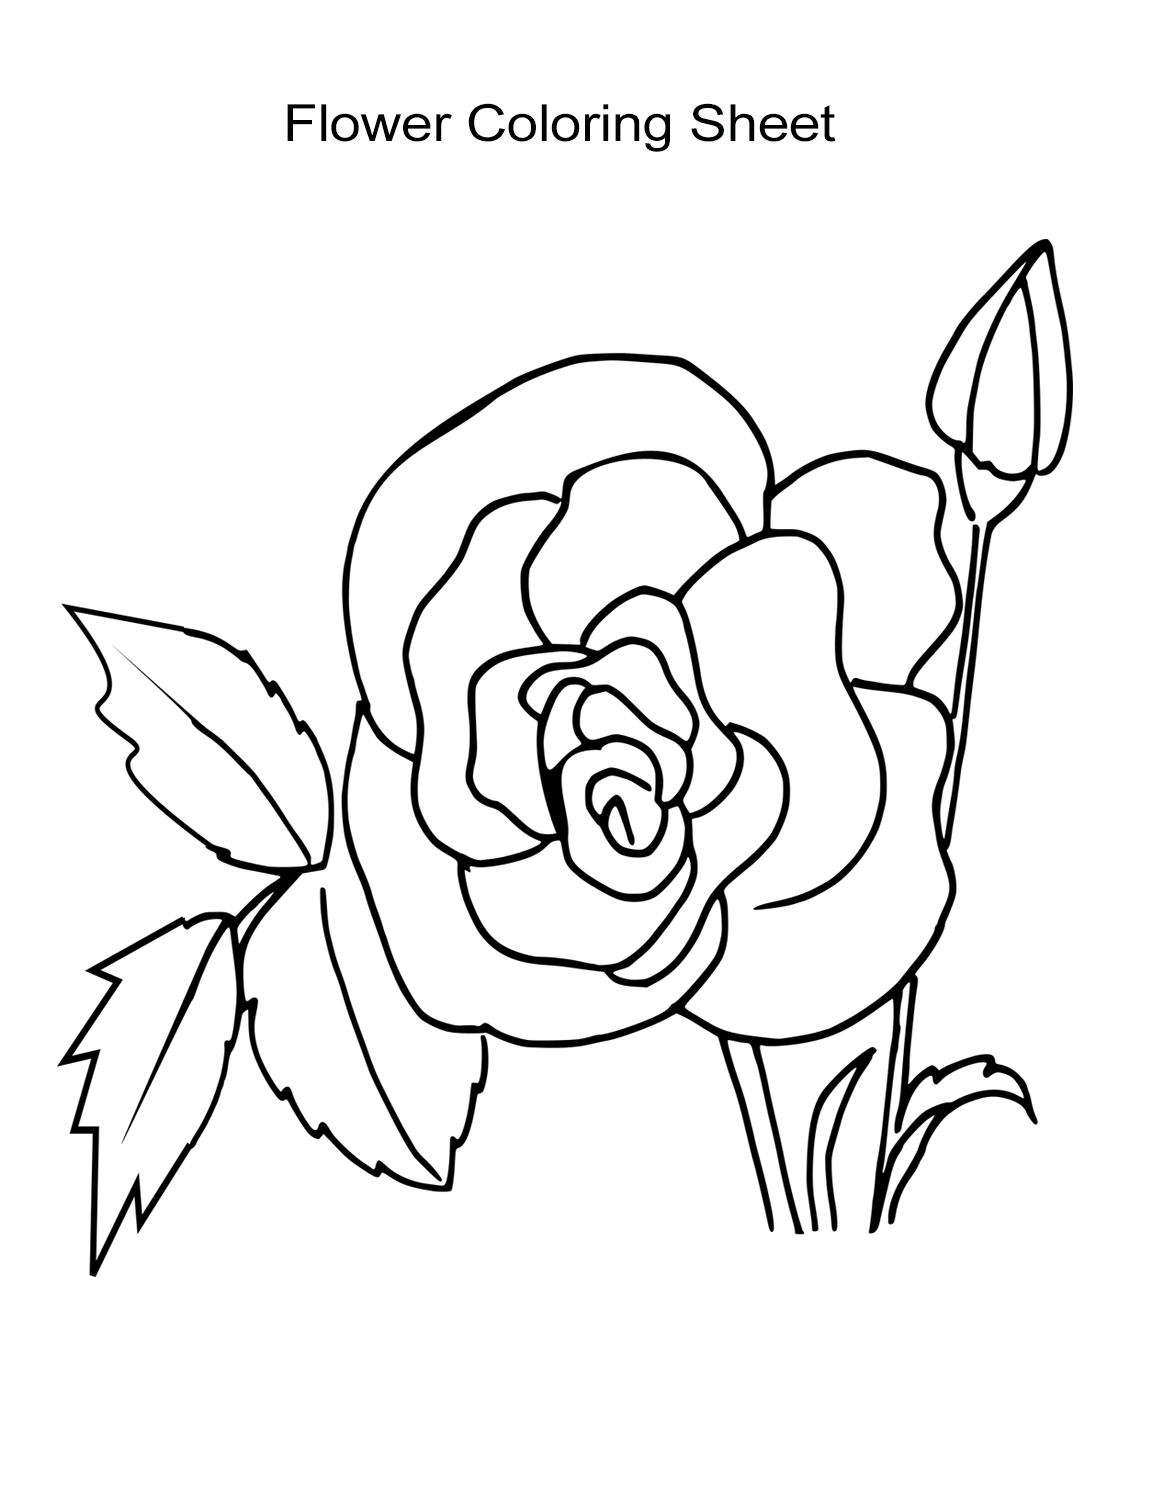 free printable flowers to color free floral coloring page instant digital download printable color flowers to free